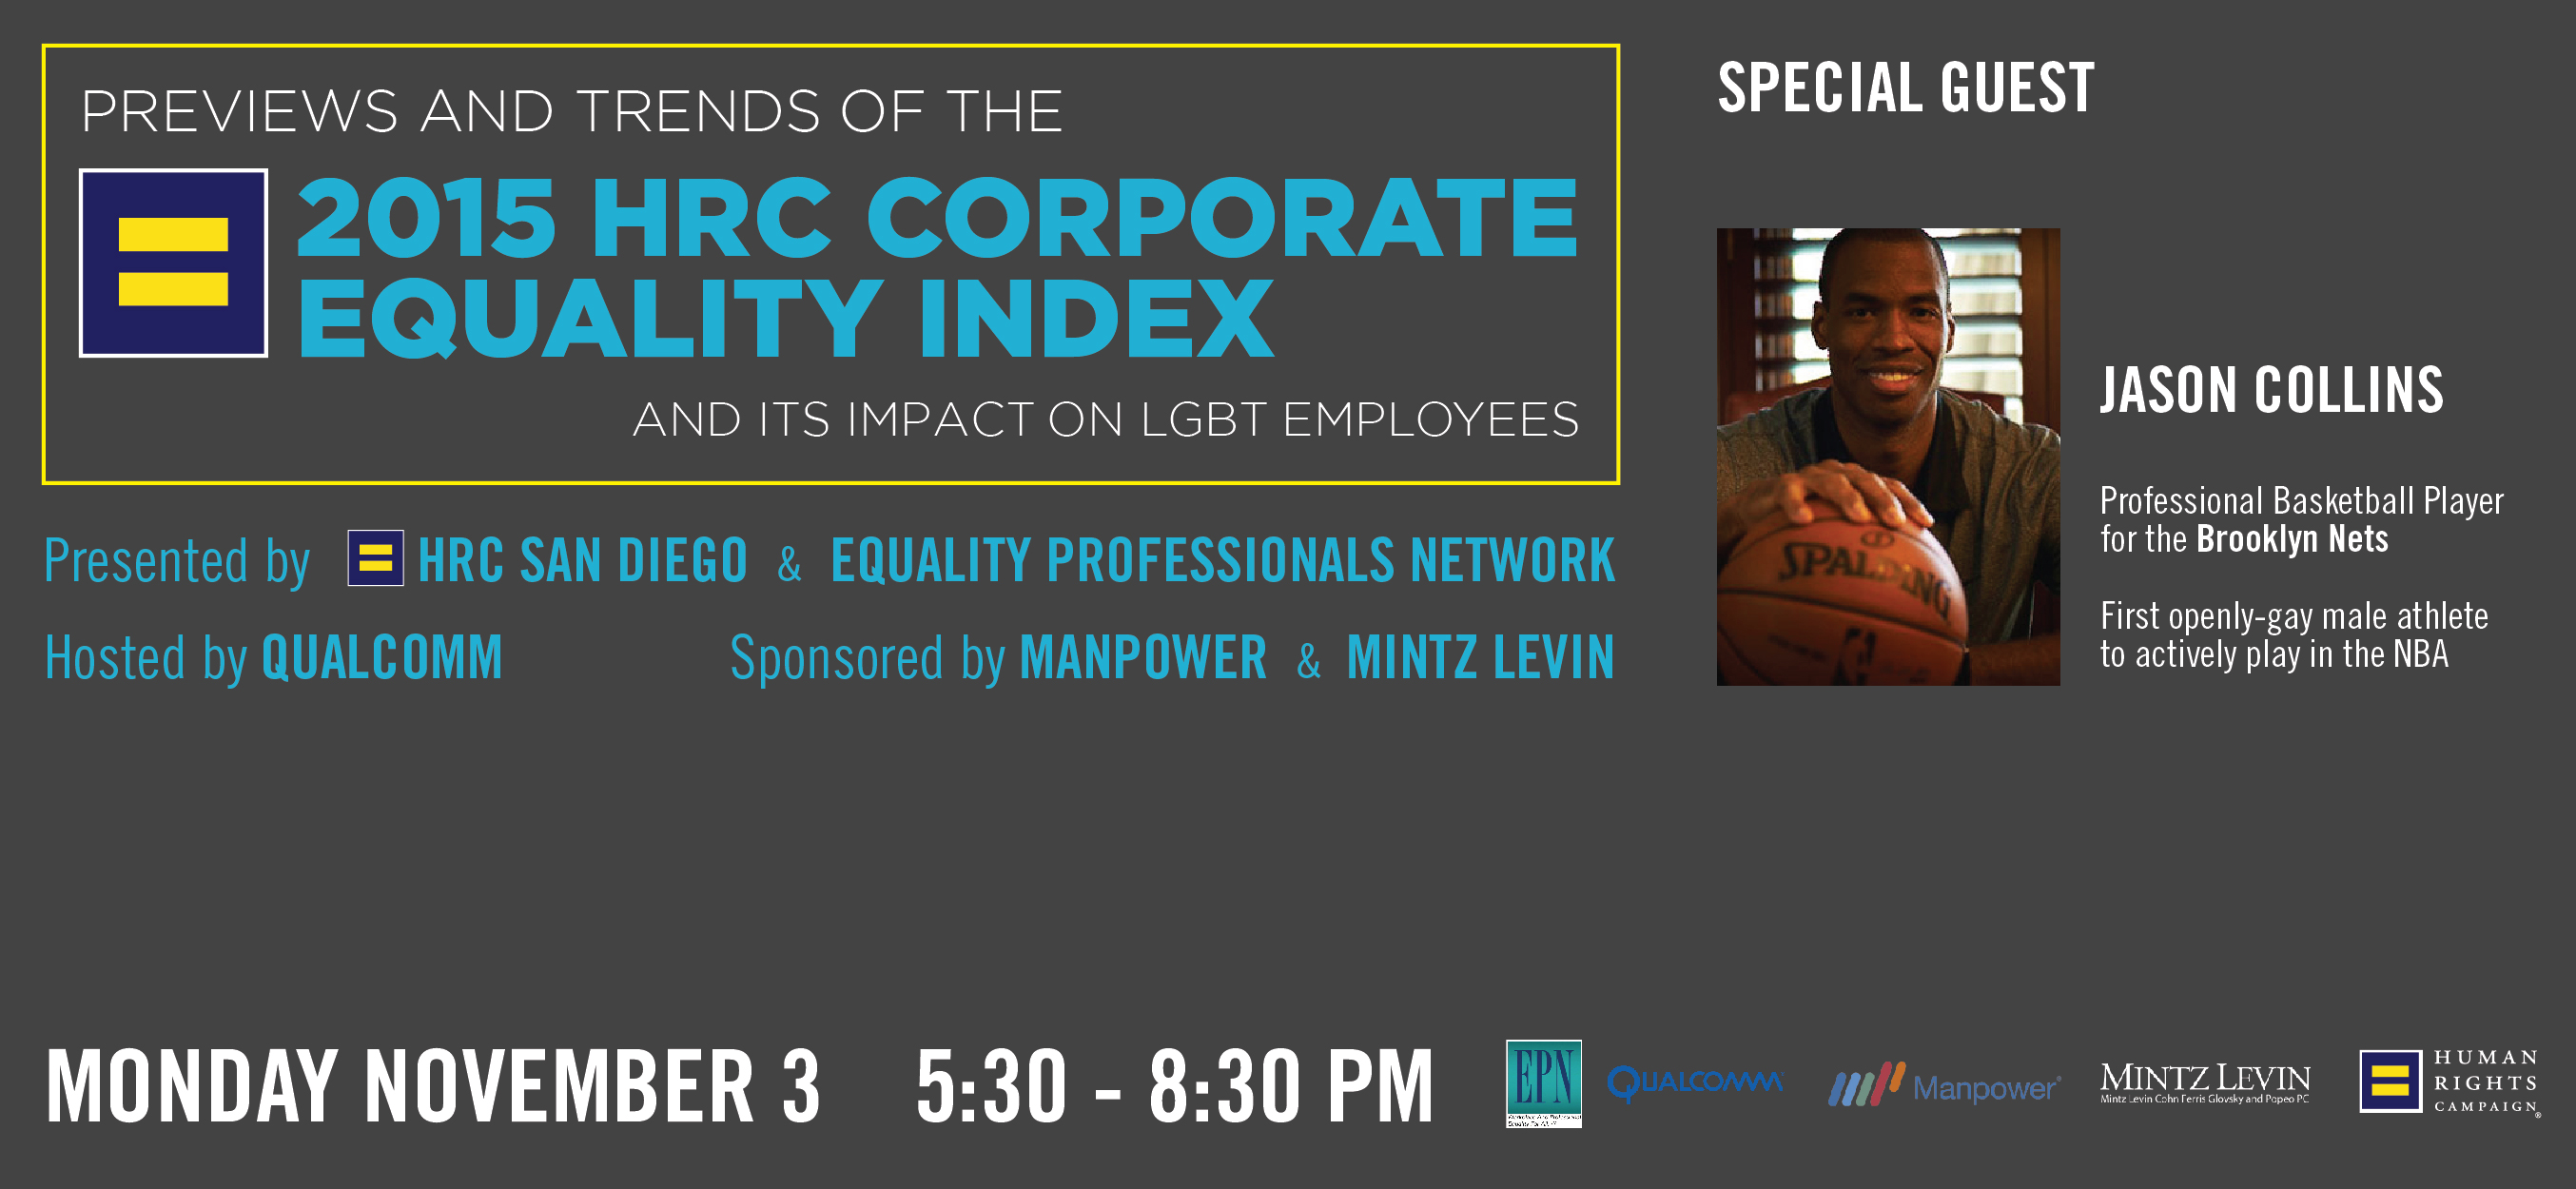 2015 Corporate Equality Index preview - Nov. 8 at Qualcomm